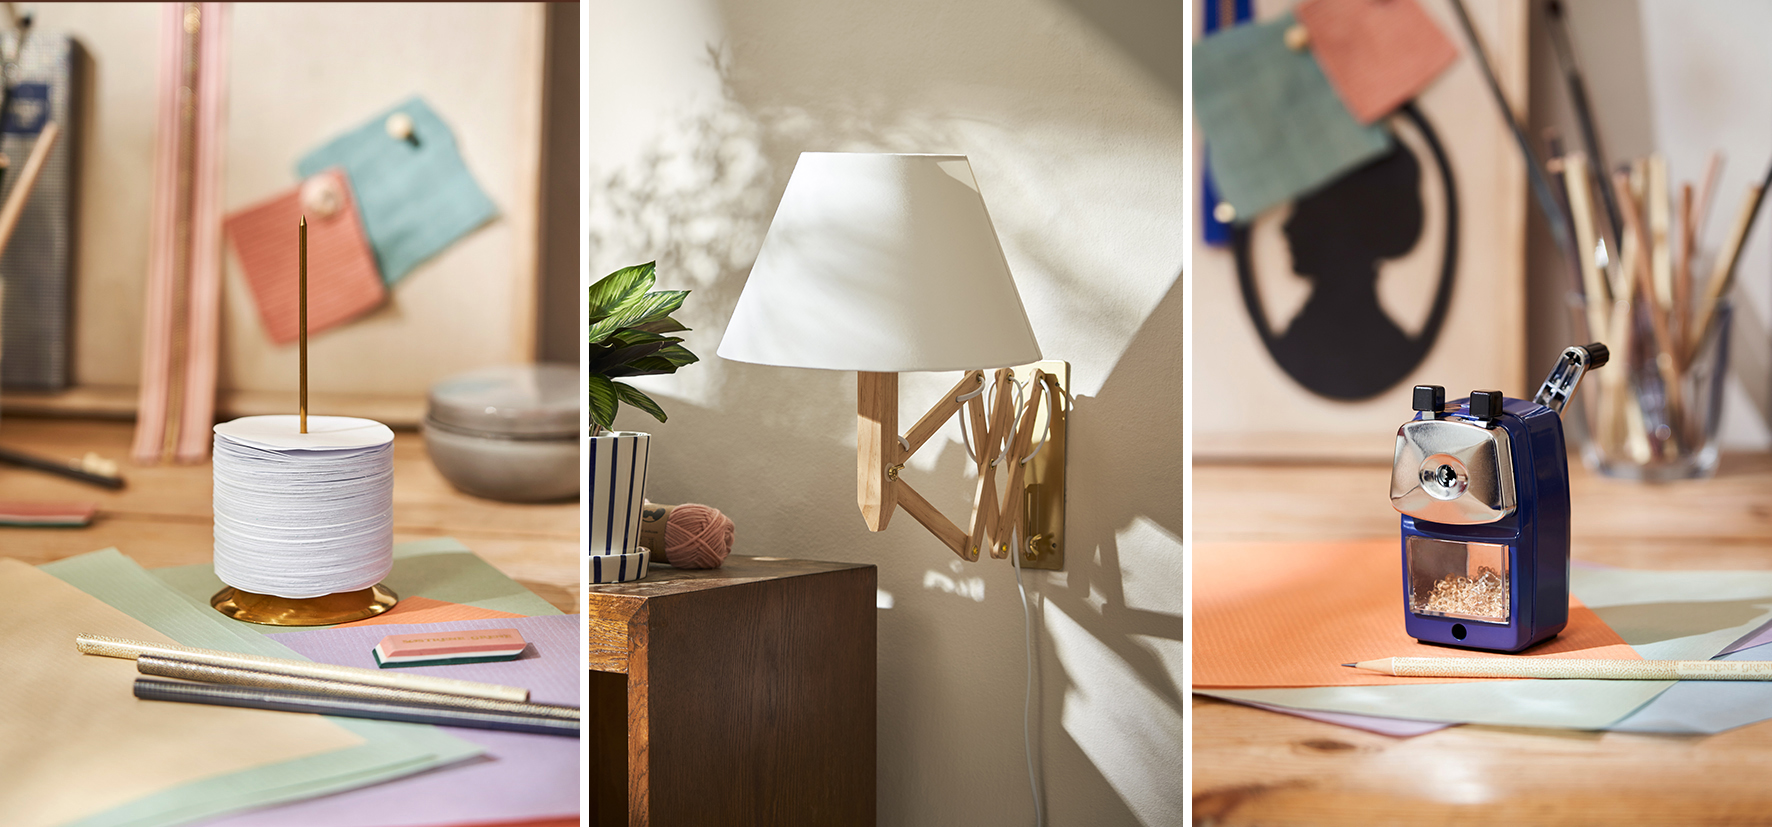 Home office products from the Nostalgic Moments Collection 2021